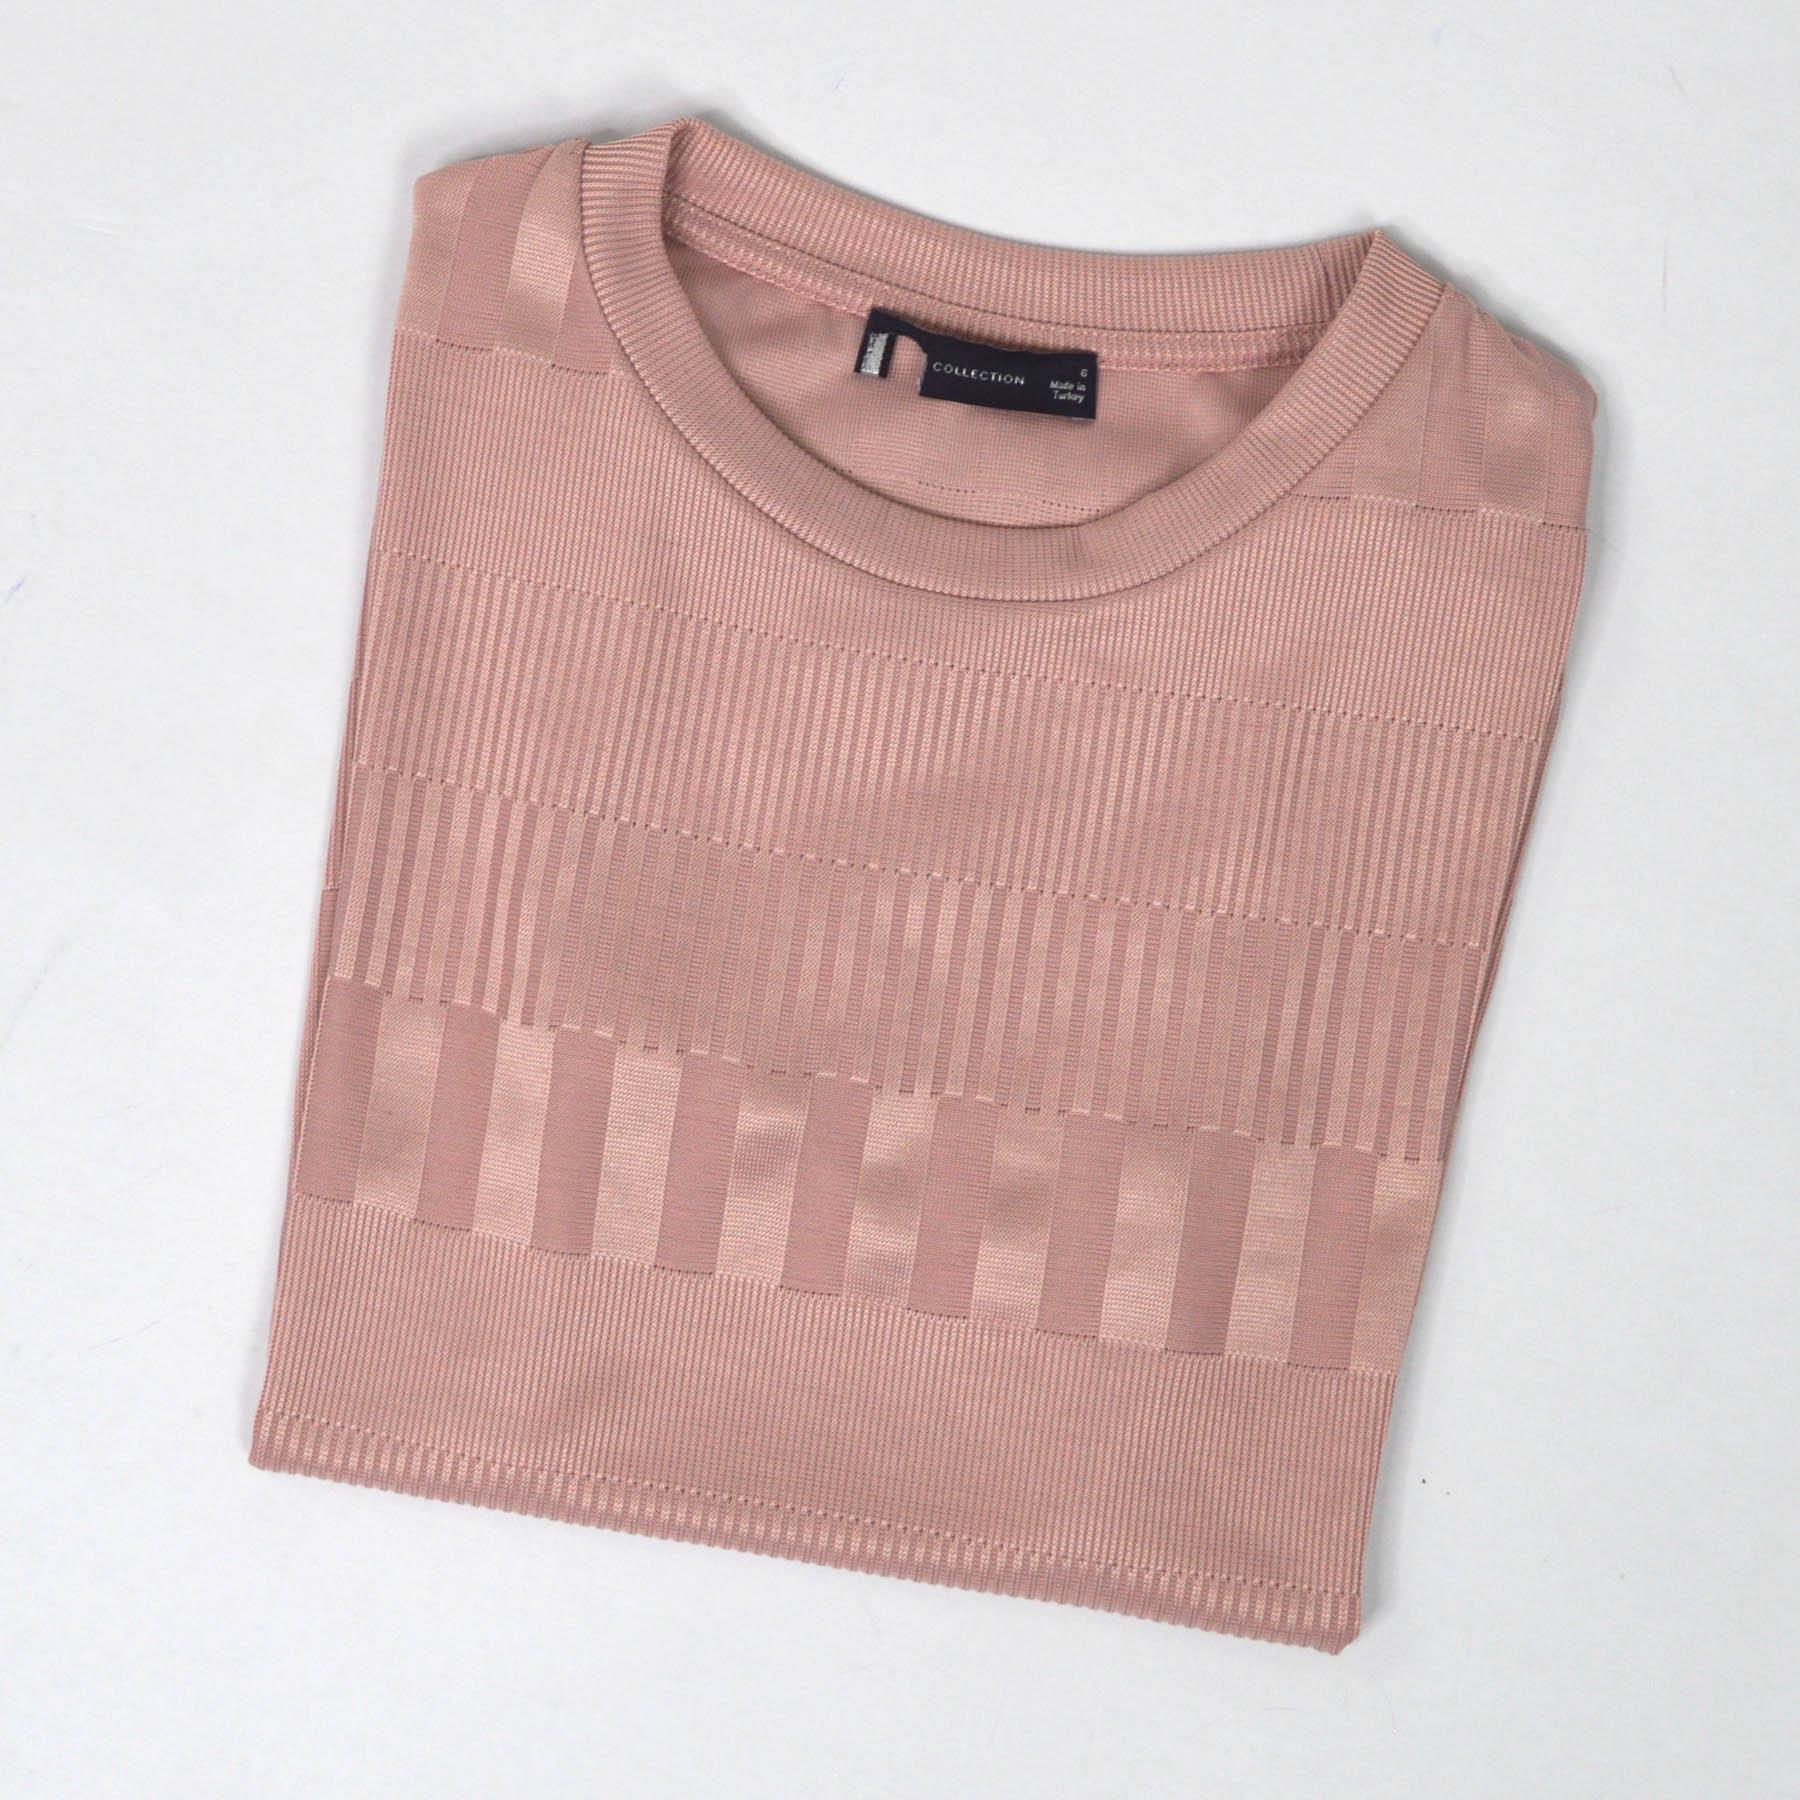 ex M/&S Marks Spencer Womens Embossed Stripe Jersey Knit Short Sleeve Top